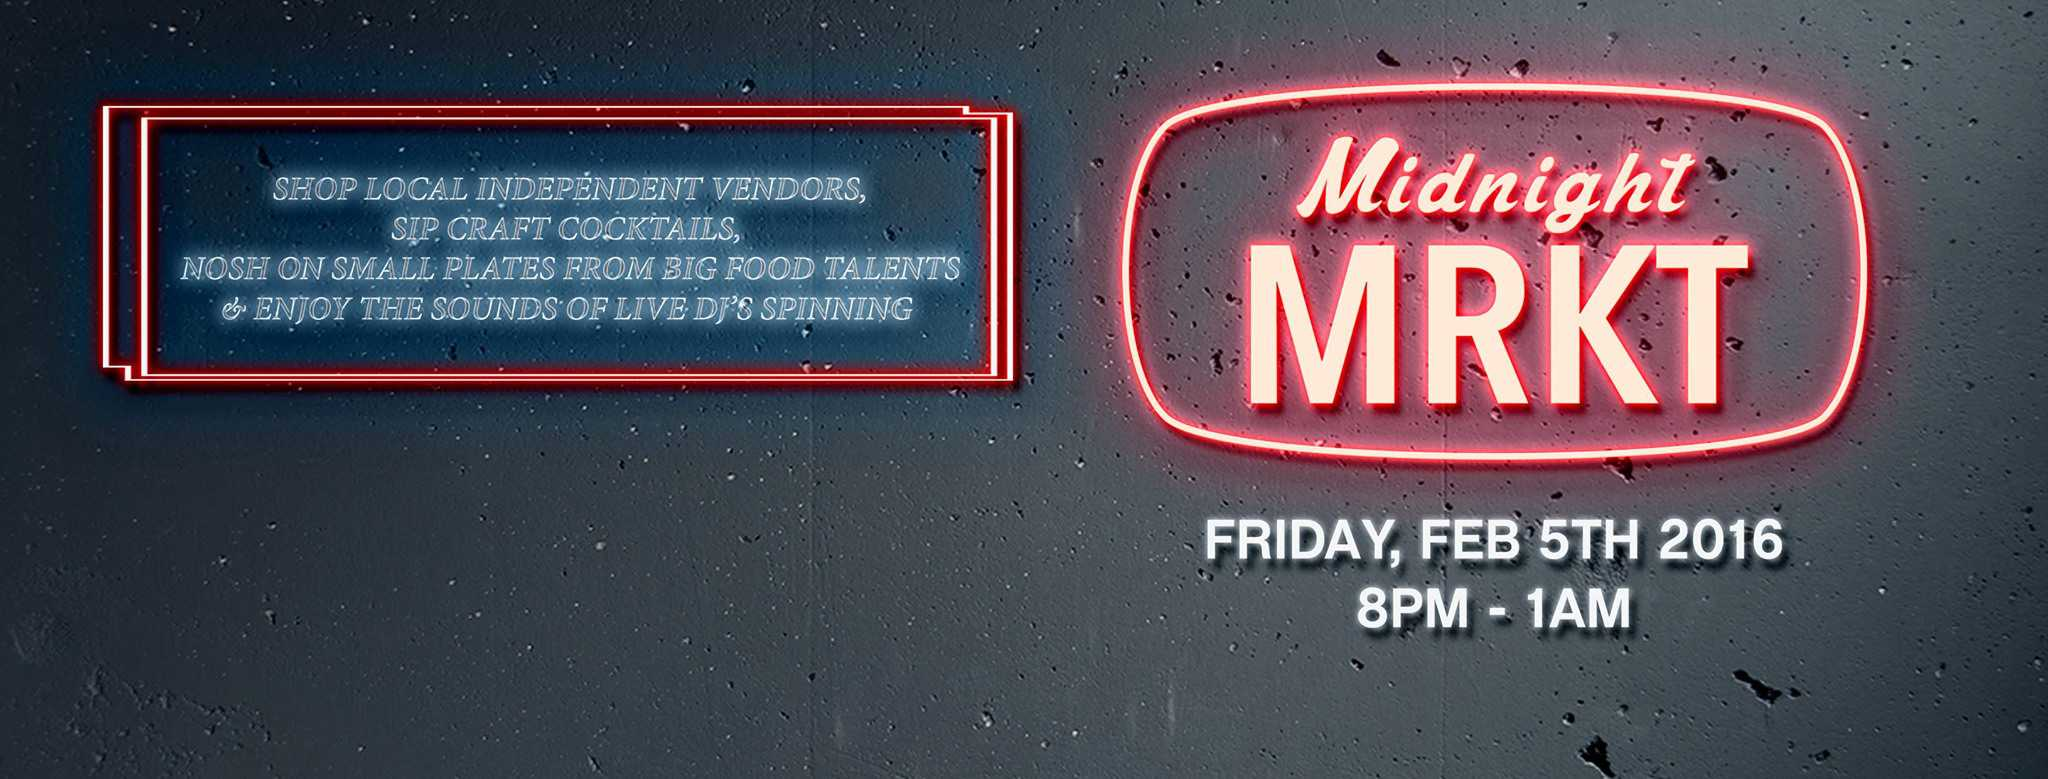 Midnight MRKT is happening TONIGHT